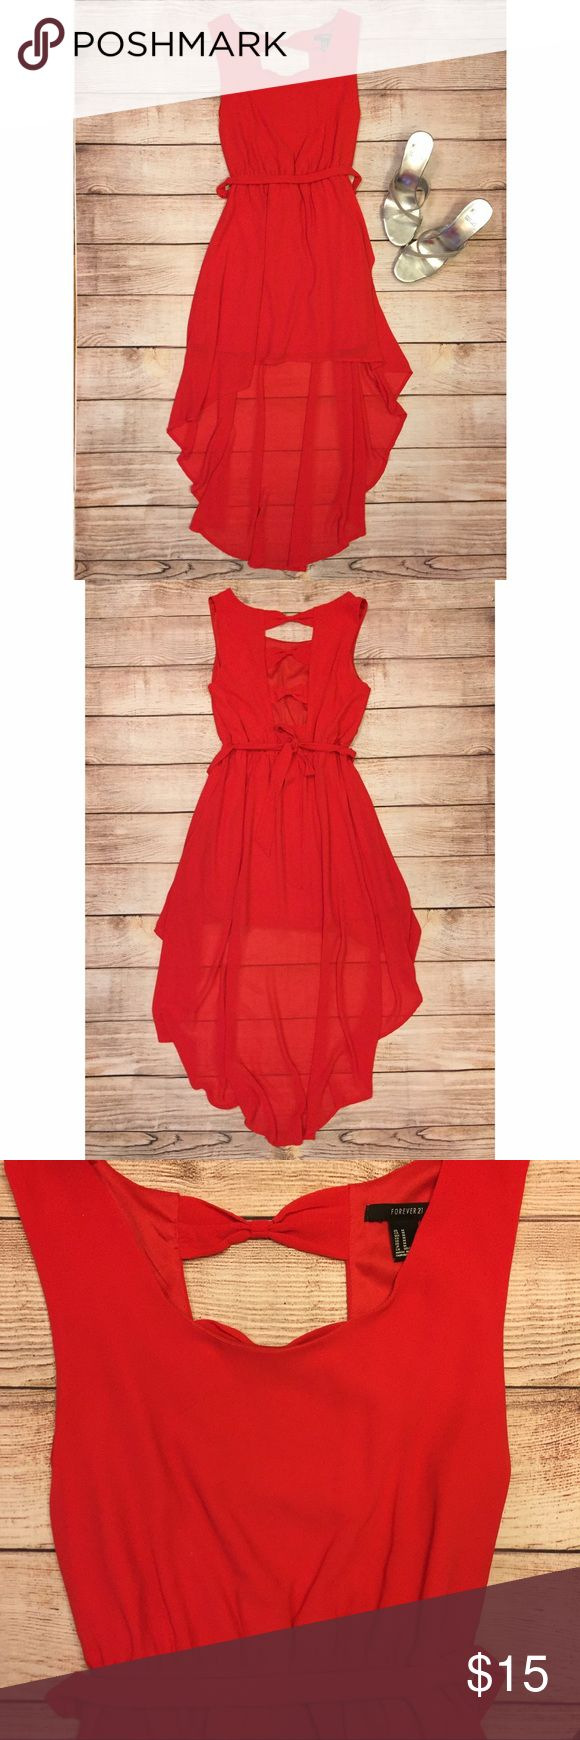 Red dress Red high low dress with bows on the back. Forever 21 Dresses High Low